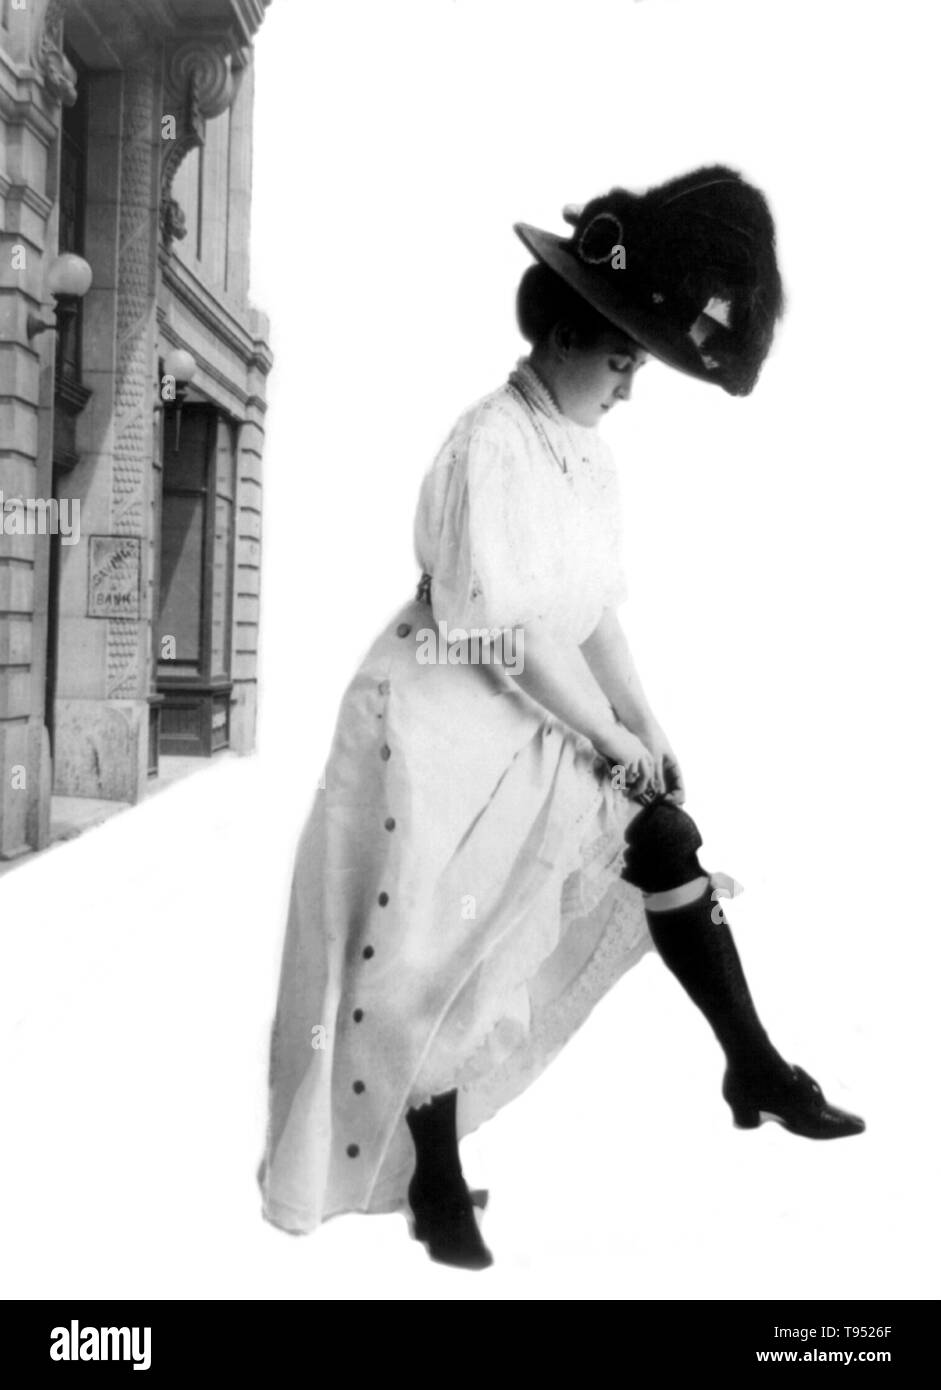 Entitled: 'Bank deposit' woman standing outside savings bank; wearing long dress and long feathered hat; she raises her skirt to insert $5 bill inside her gartered stocking. Photographed by Consolidated Art Company, 1908. - Stock Image